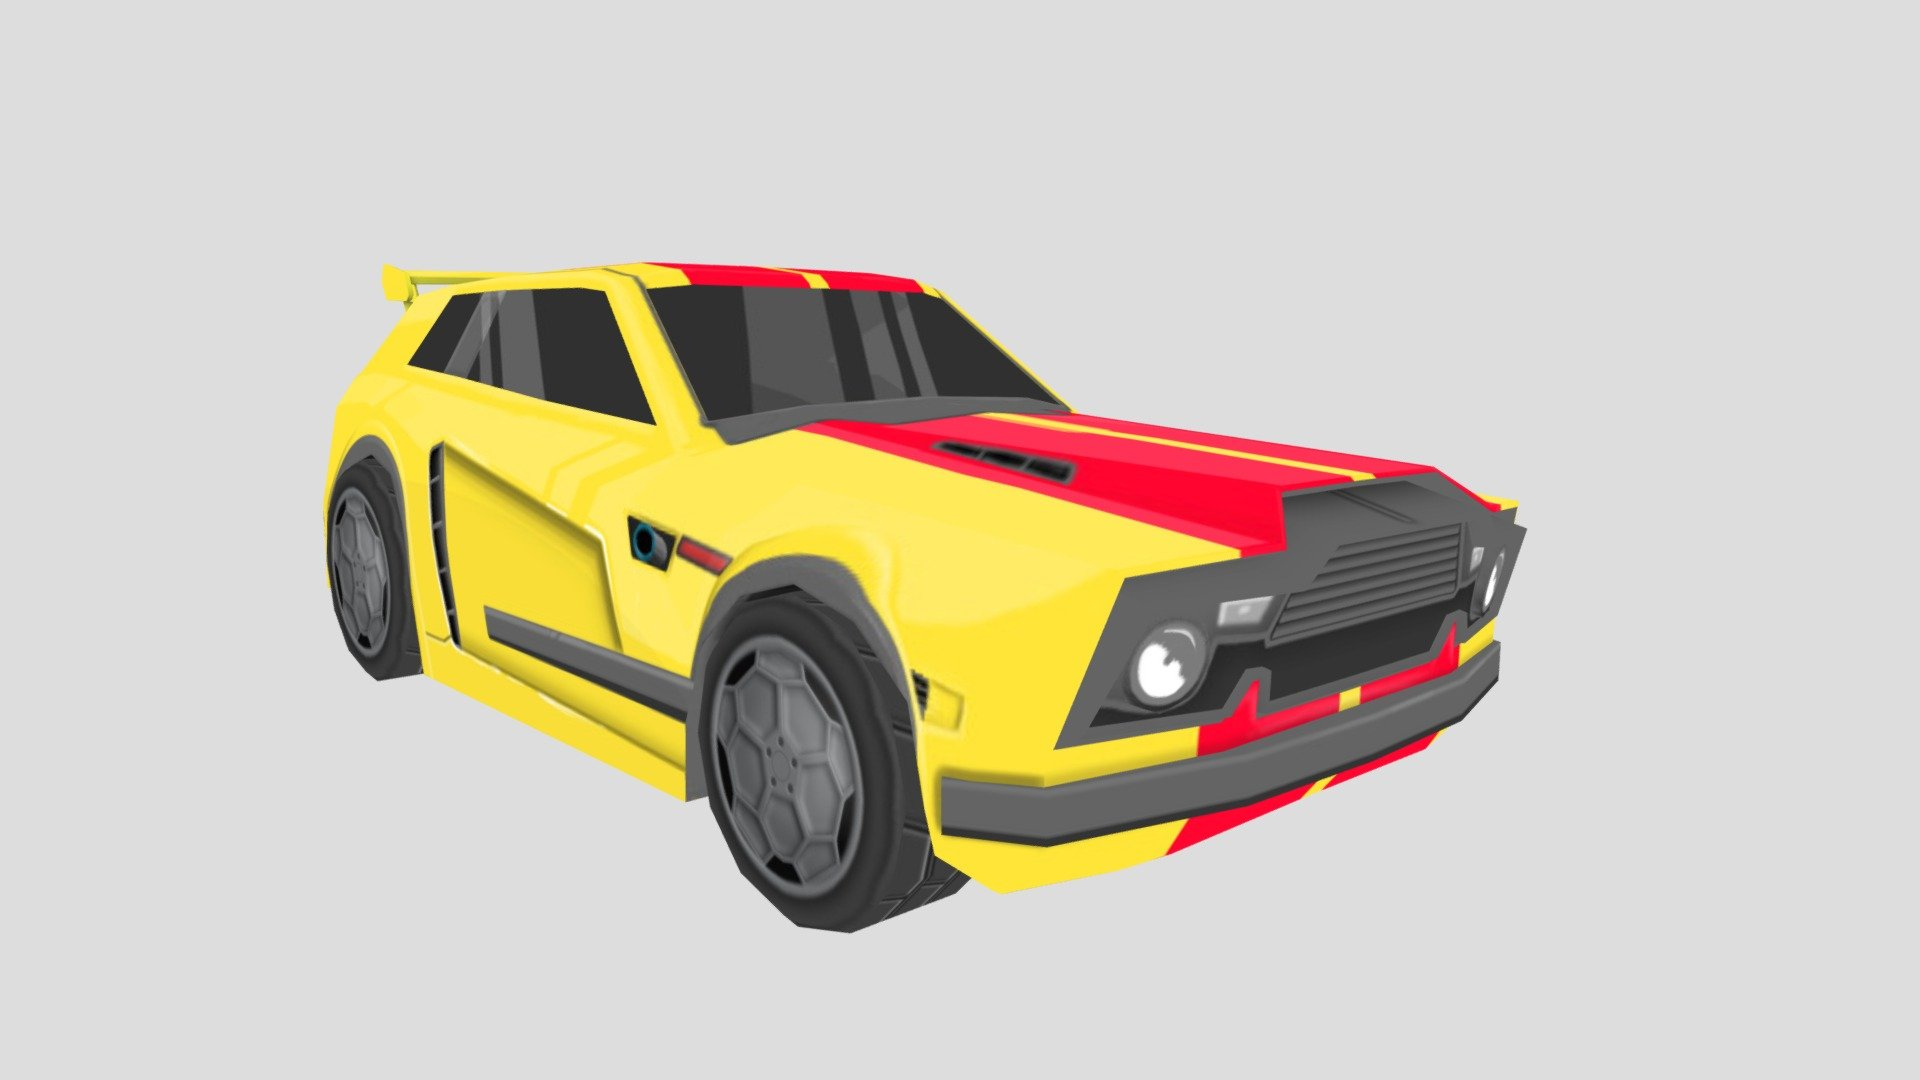 Low Poly Fennec 3d Model By Notadam Notadam 8e7d448 Sketchfab The fennec is a sweet ride. low poly fennec 3d model by notadam